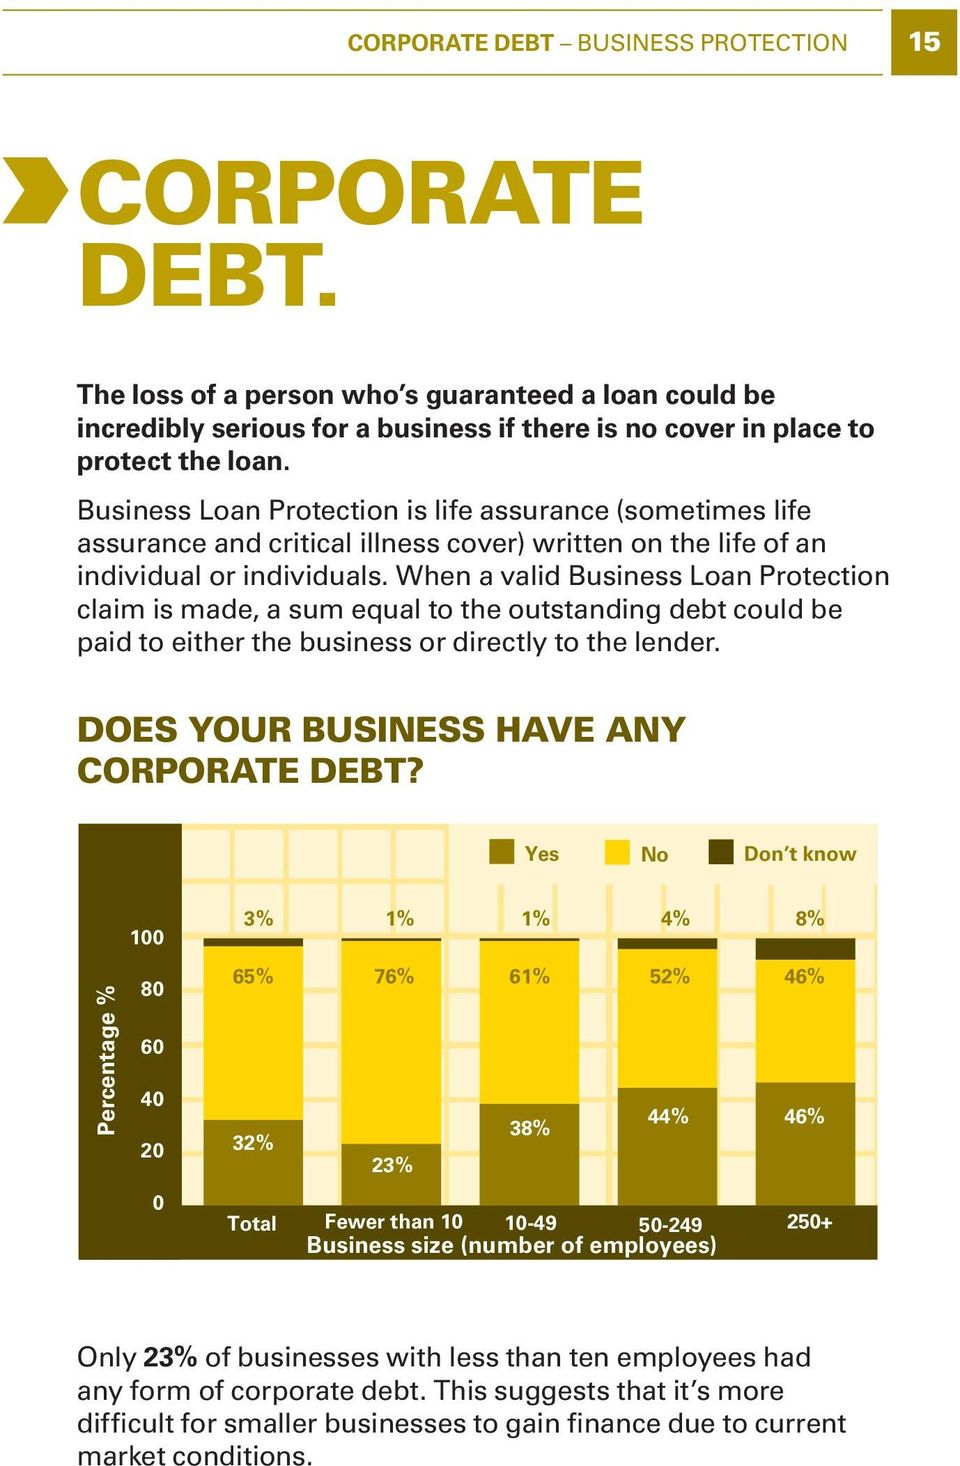 When a valid Business Loan Protection claim is made, a sum equal to the outstanding debt could be paid to either the business or directly to the lender. Does your BUsiness HAve any corporate debt?